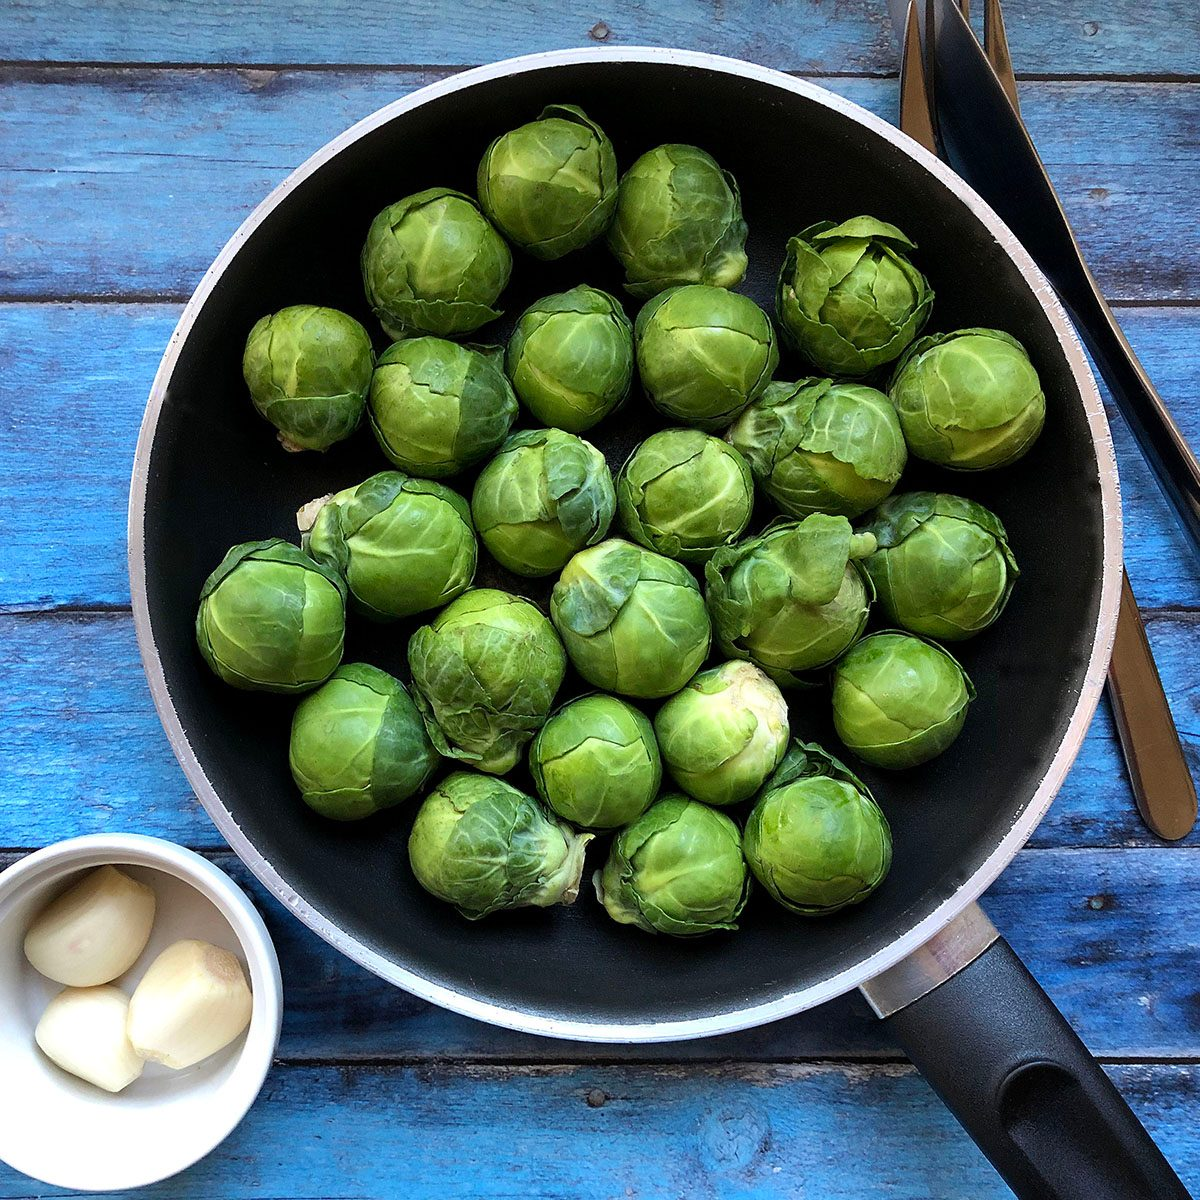 High Angle View Of Brussels Sprout In Frying Pan On Table